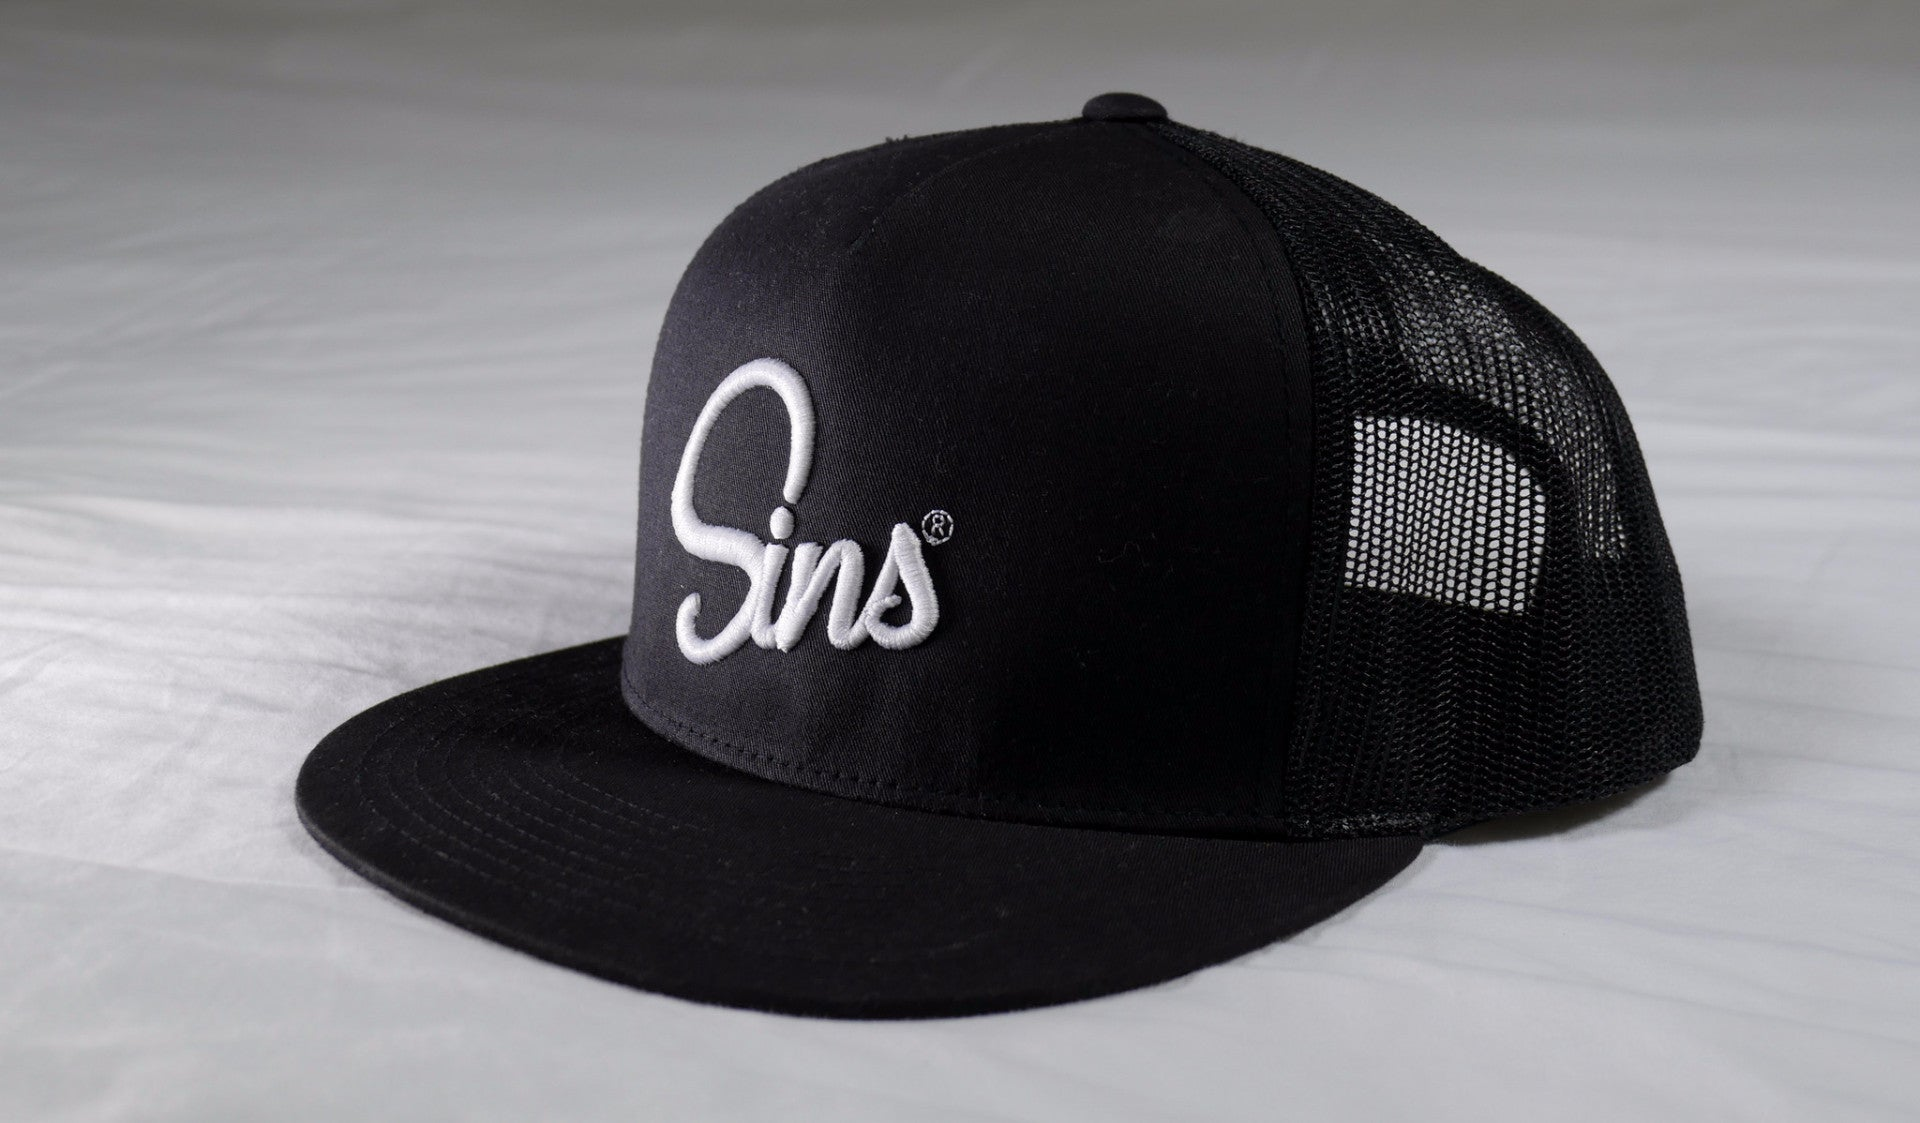 Sins Logo Hat Puff Embroidery by Johnny Sins and Kissa Sins